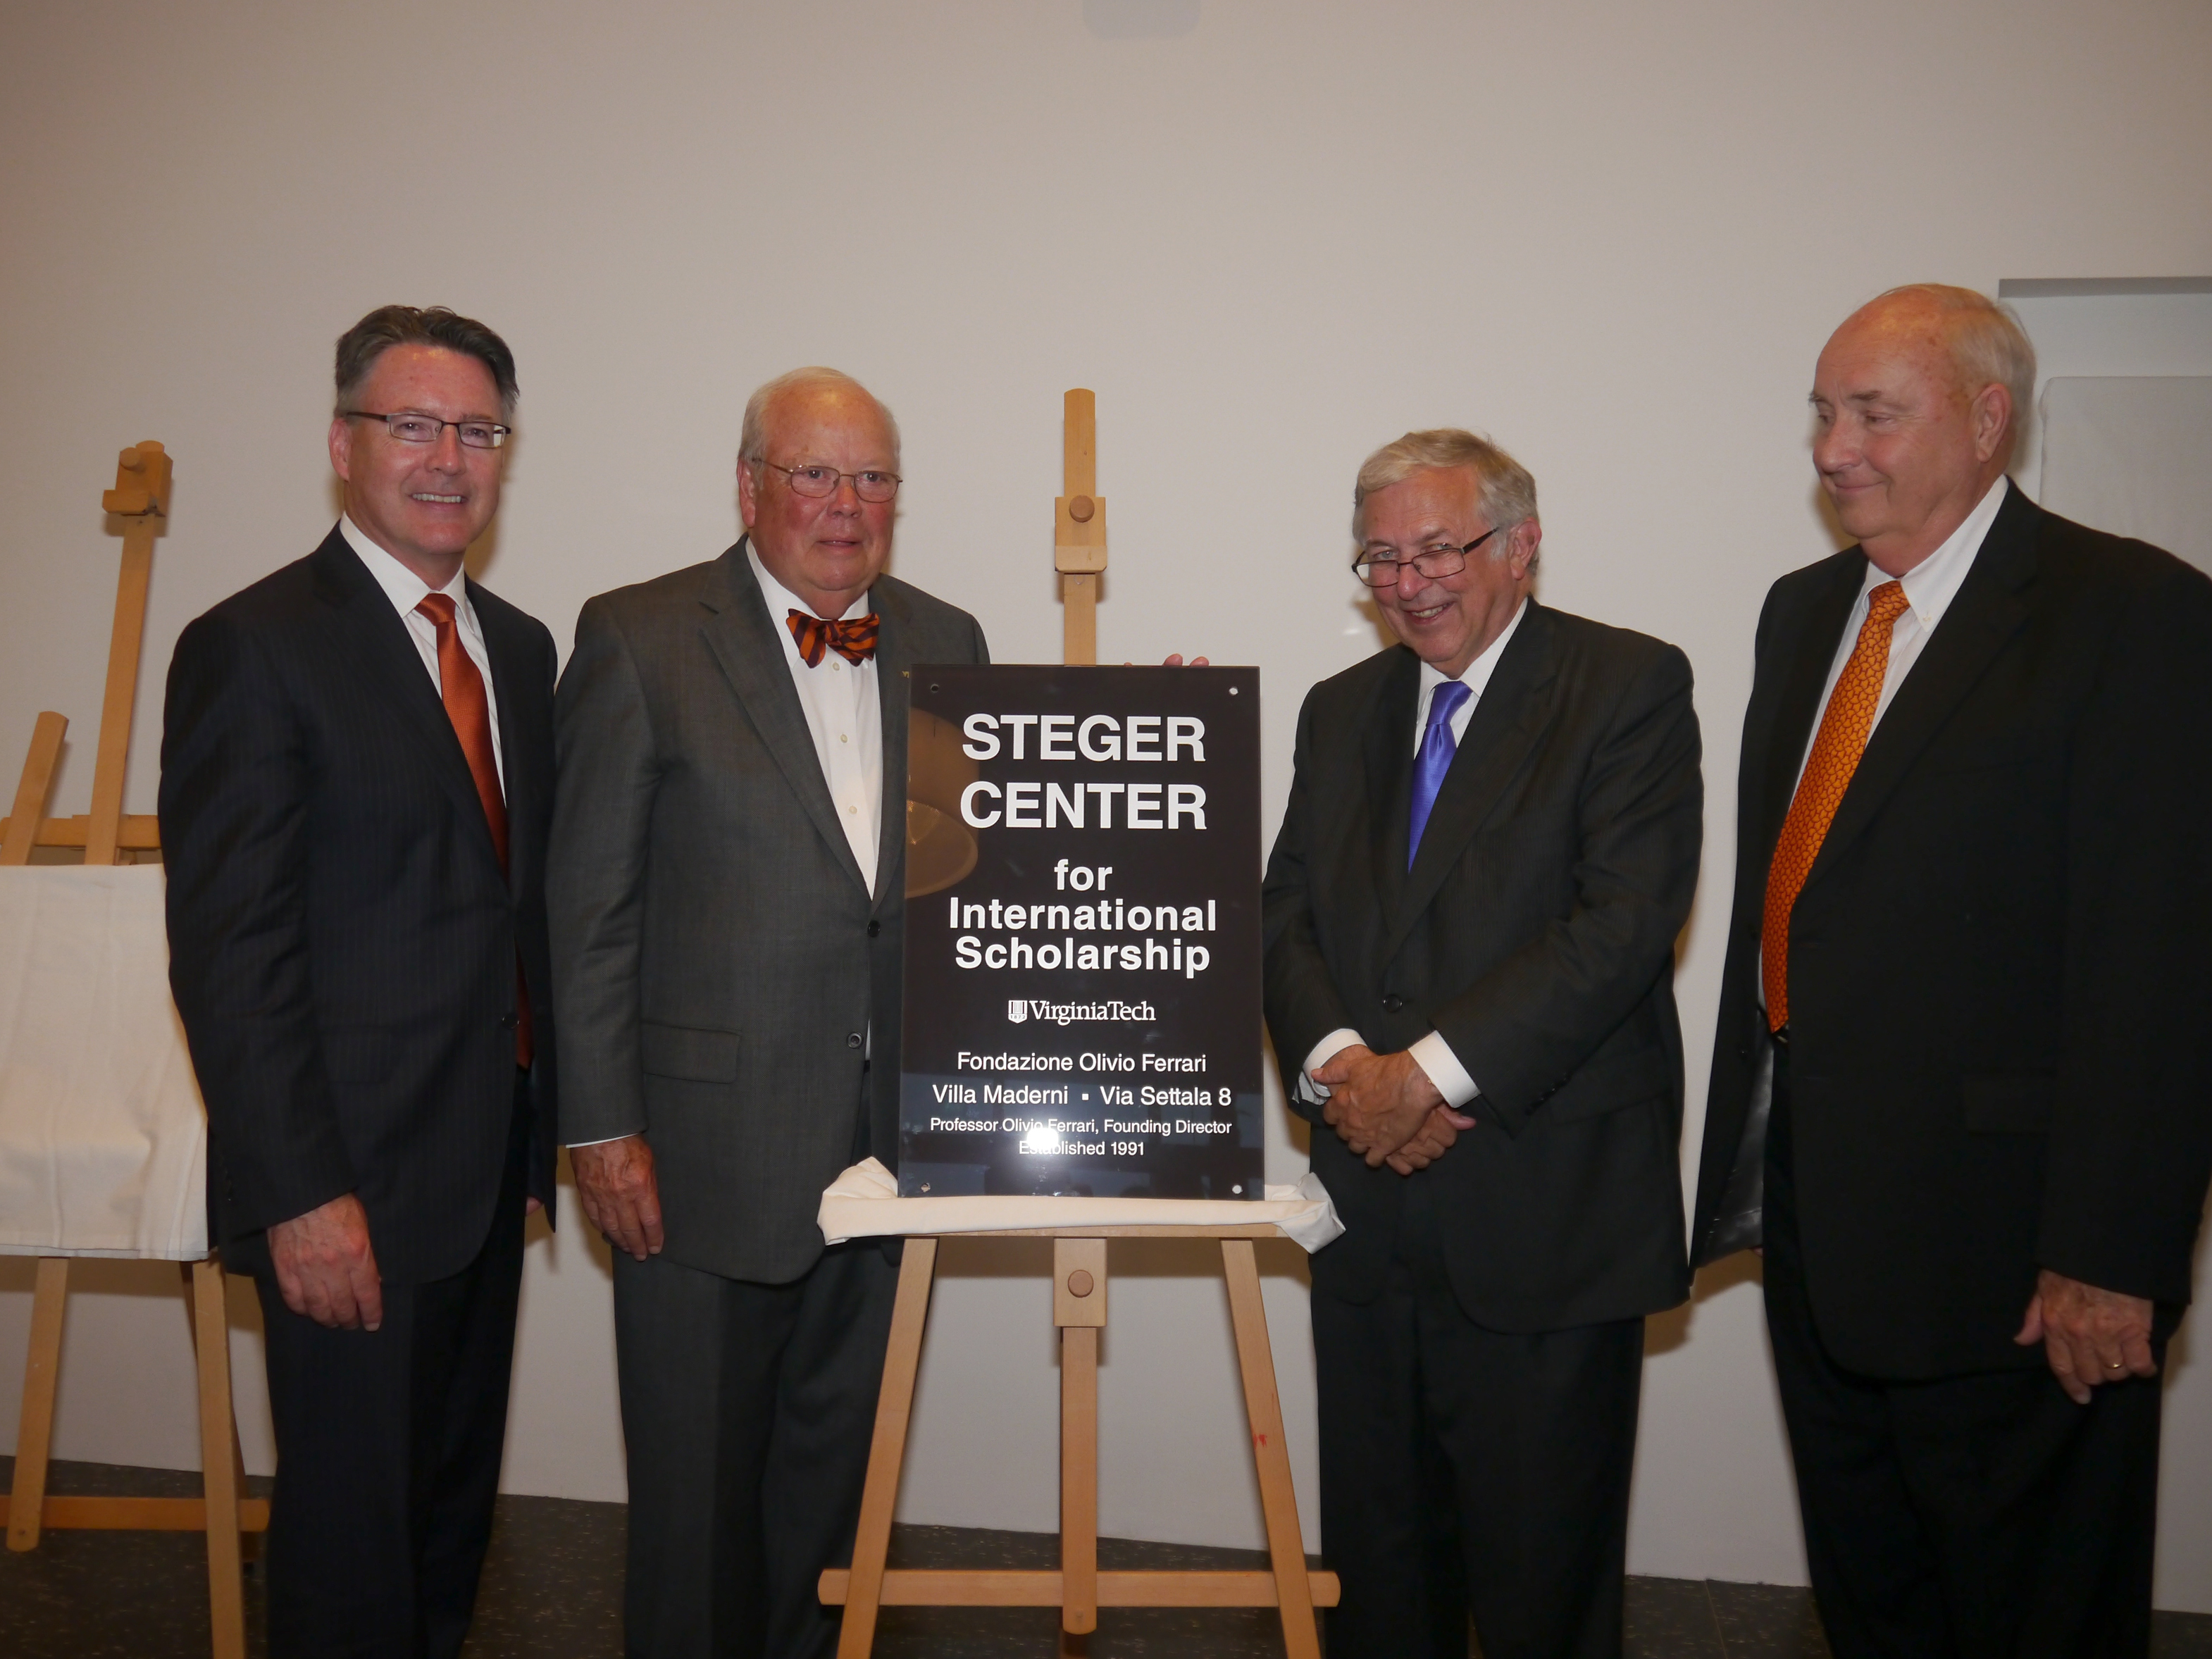 University President Timothy Sands, Virginia Tech Foundation Board Chairman Ben Davenport Jr., Former university president Charles W. Steger, and Board of Visitors member William Holtzman